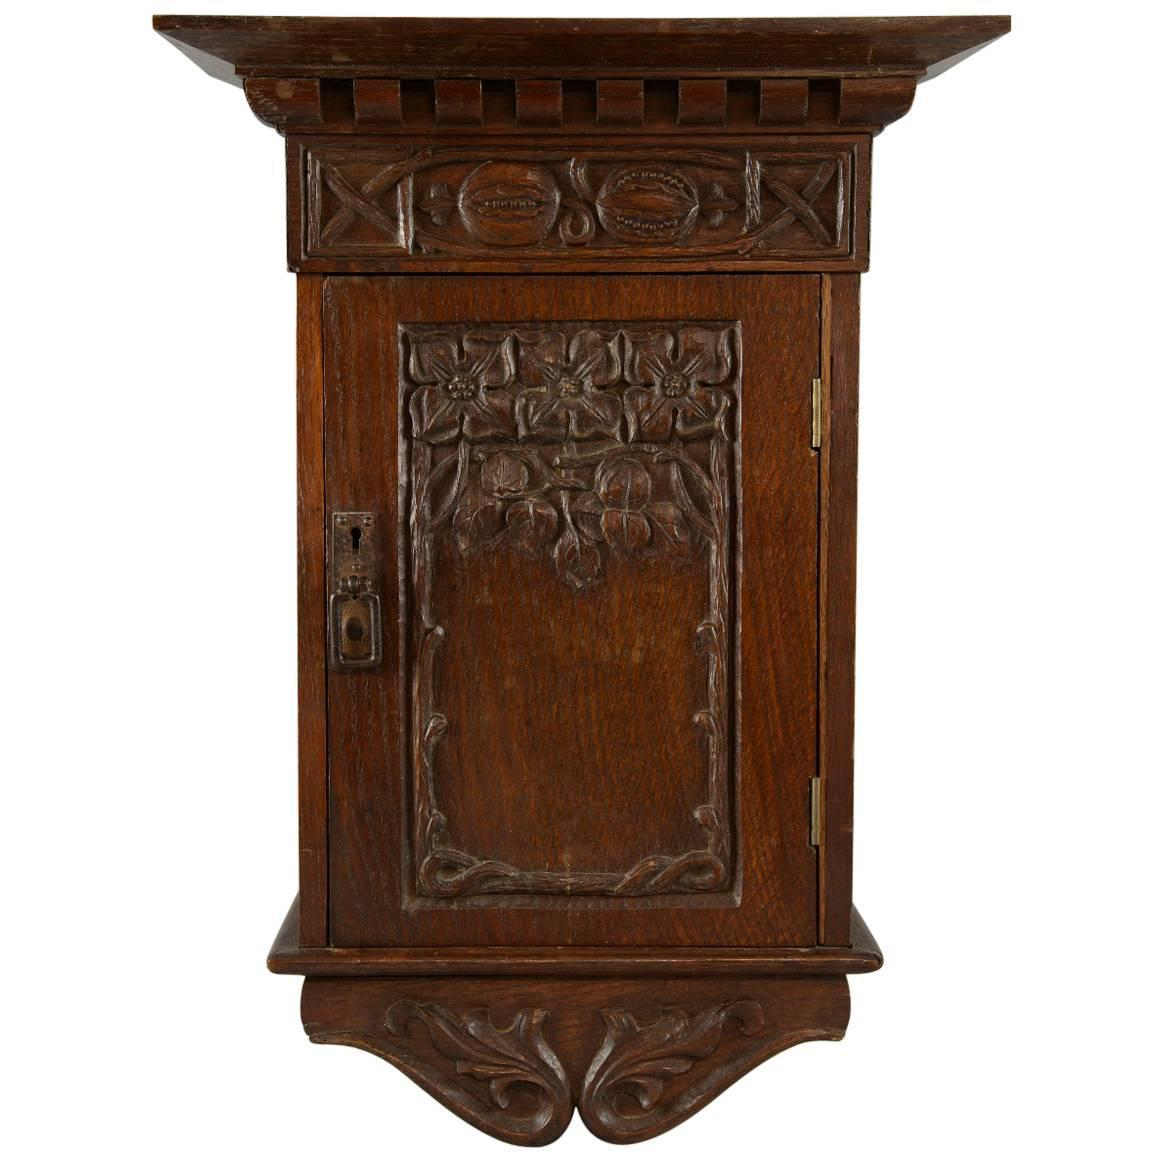 Arts and crafts carved oak wall cabinet for sale at 1stdibs for Arts and crafts storage cabinet